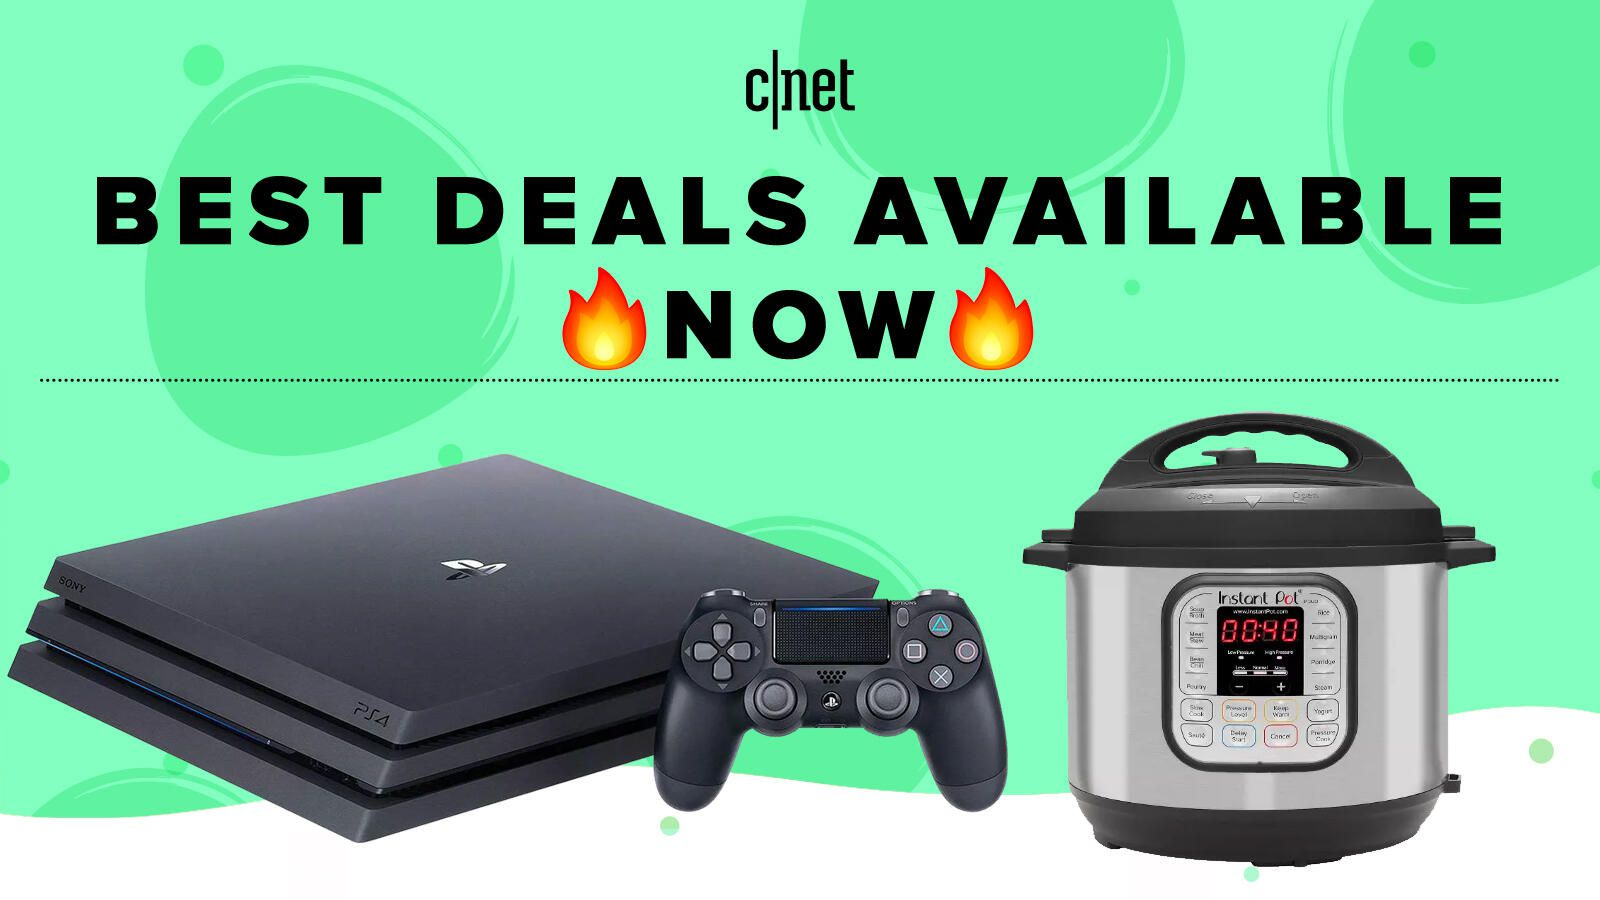 Black Friday 2019 deals: $250 iPad, $149 Fitbit Versa and save $150 on Xbox One X bundle